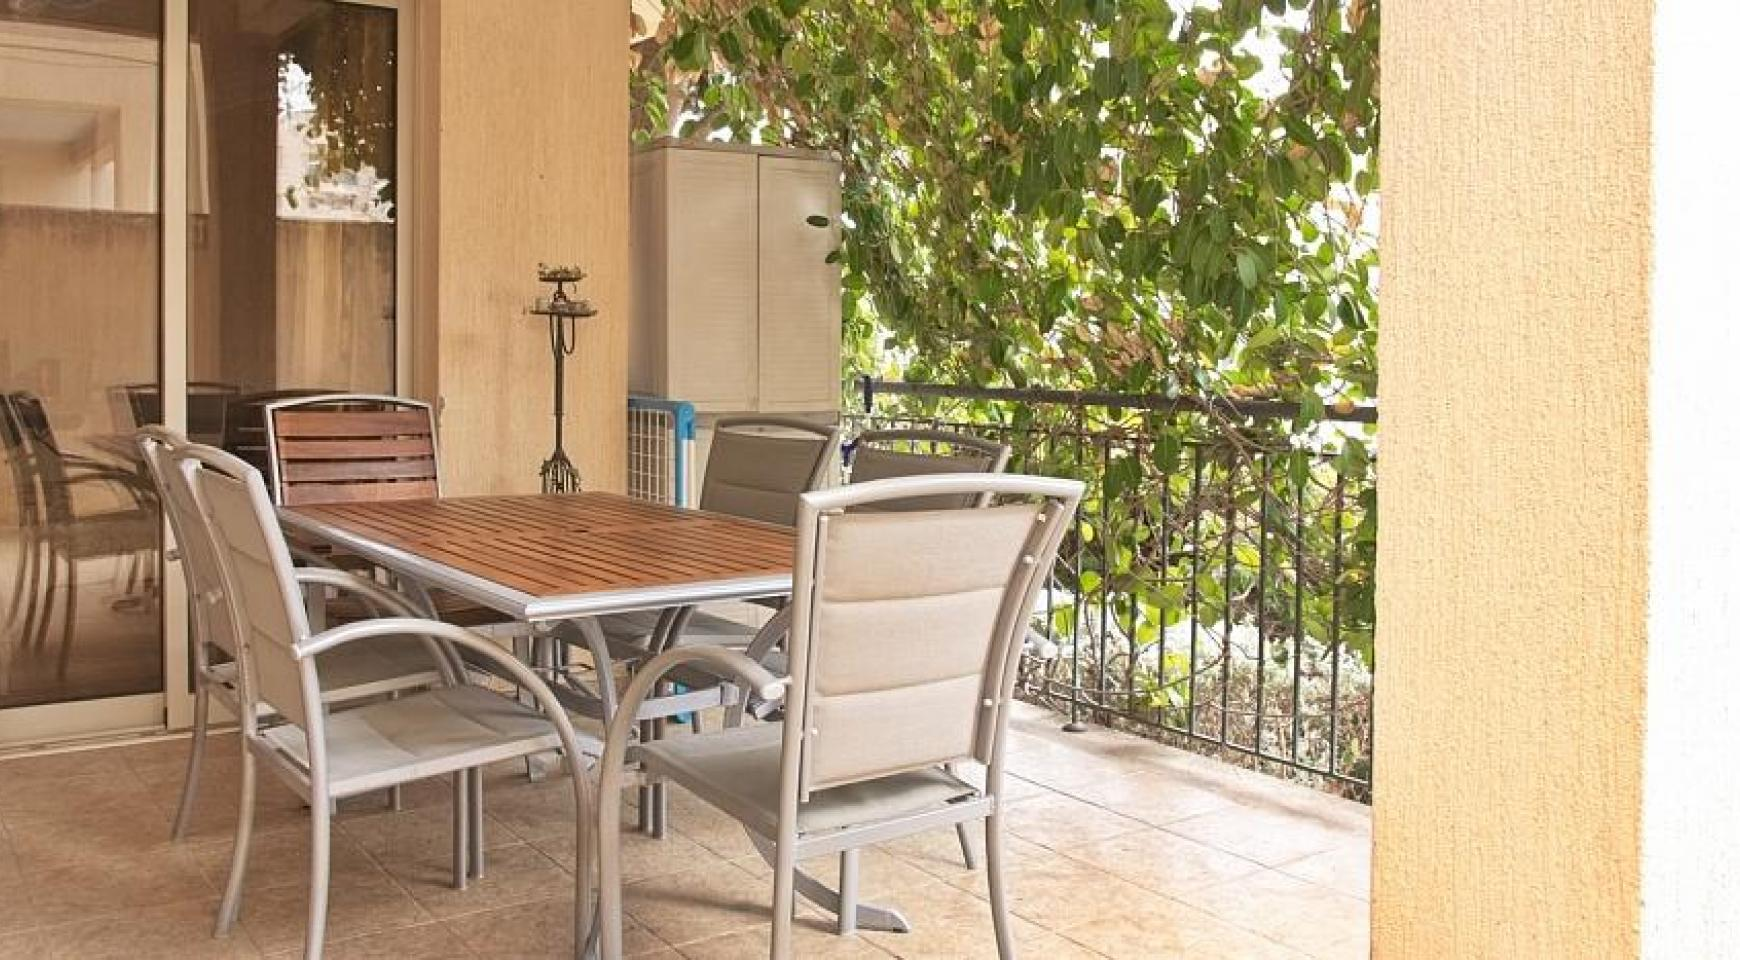 SPECIAL OFFER! 2 Bedroom Apartment with Private Garden - 3